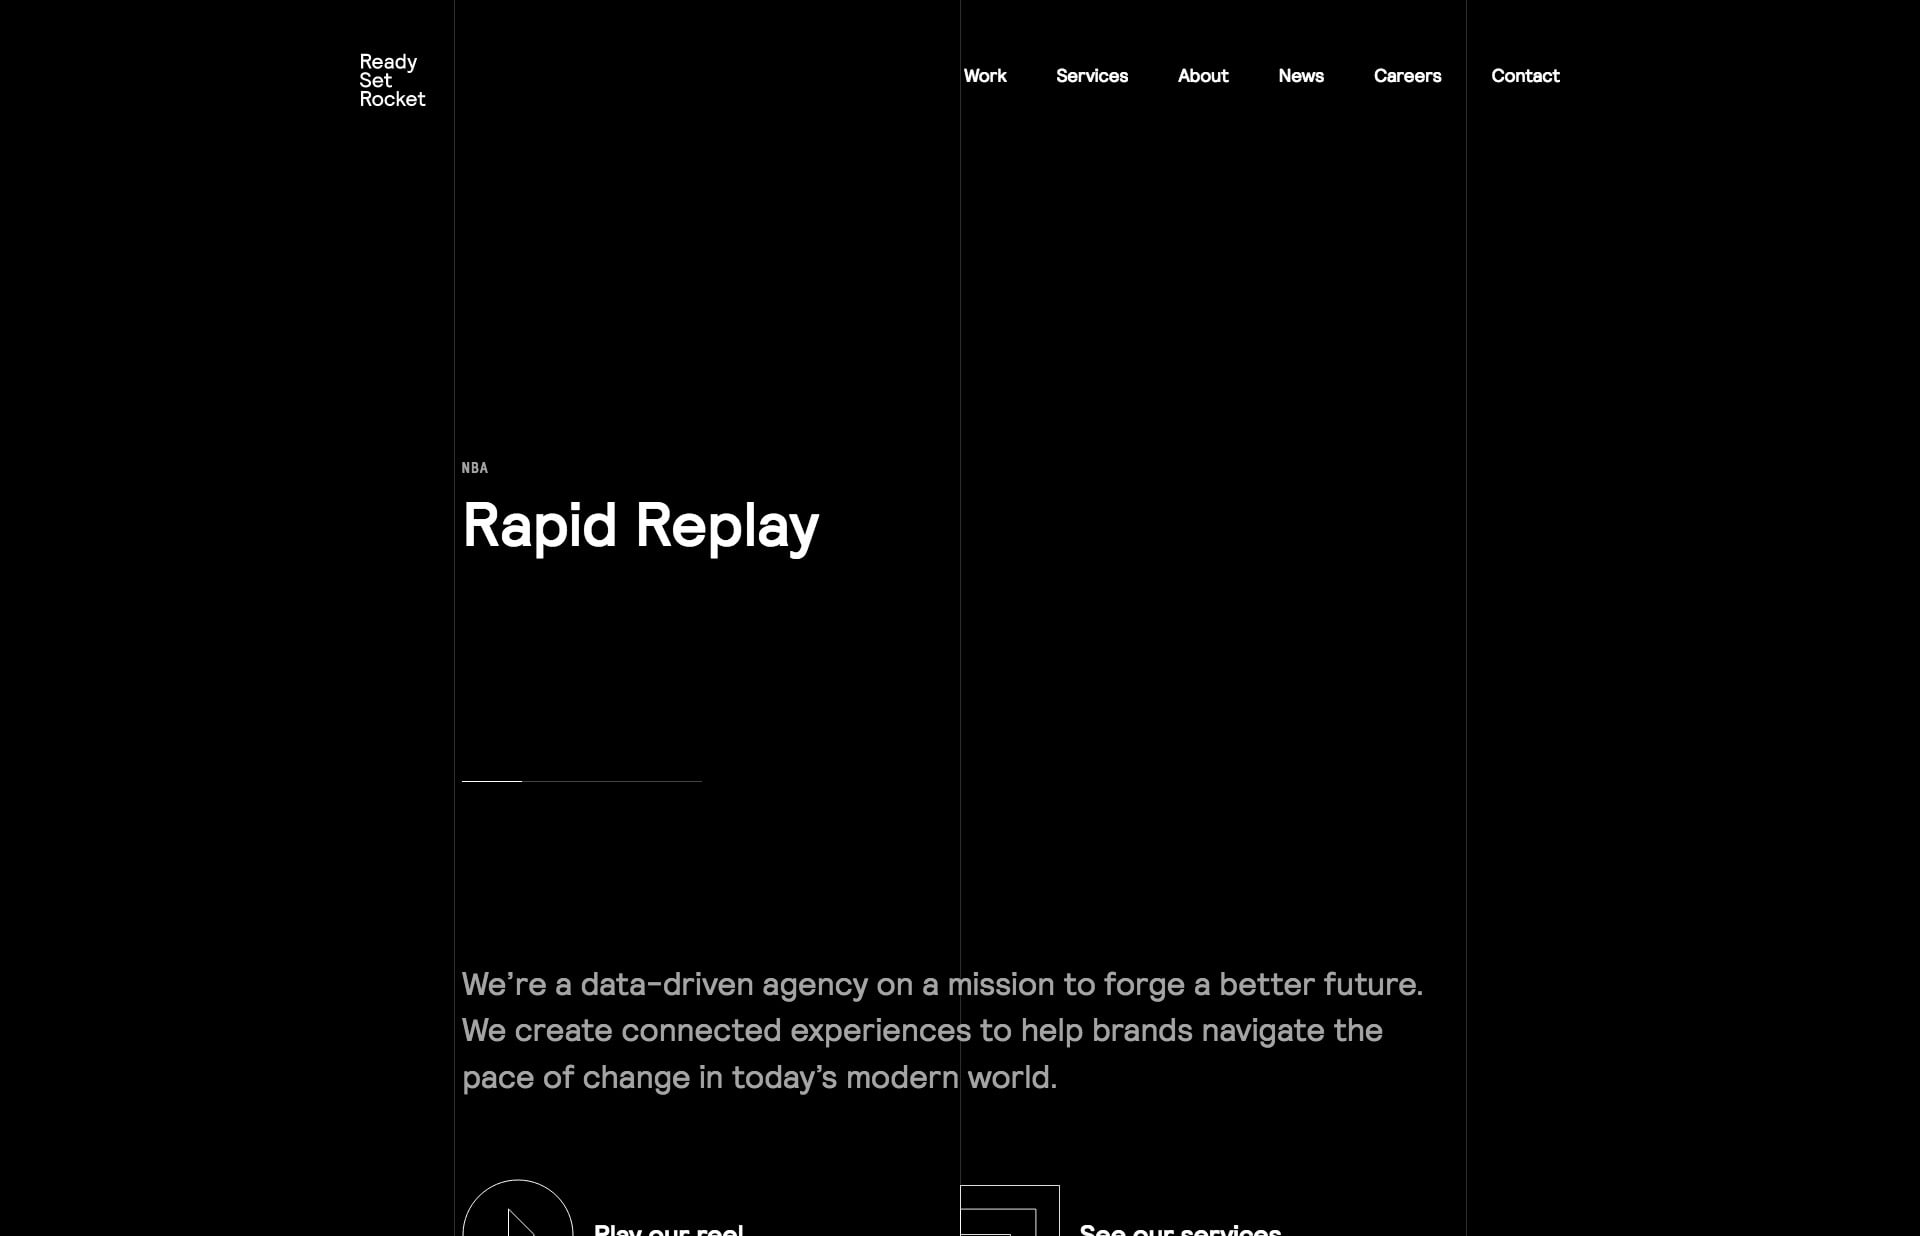 Screenshot of the website Ready Set Rocket, featured on The Gallery, a curated collection of minimal websites